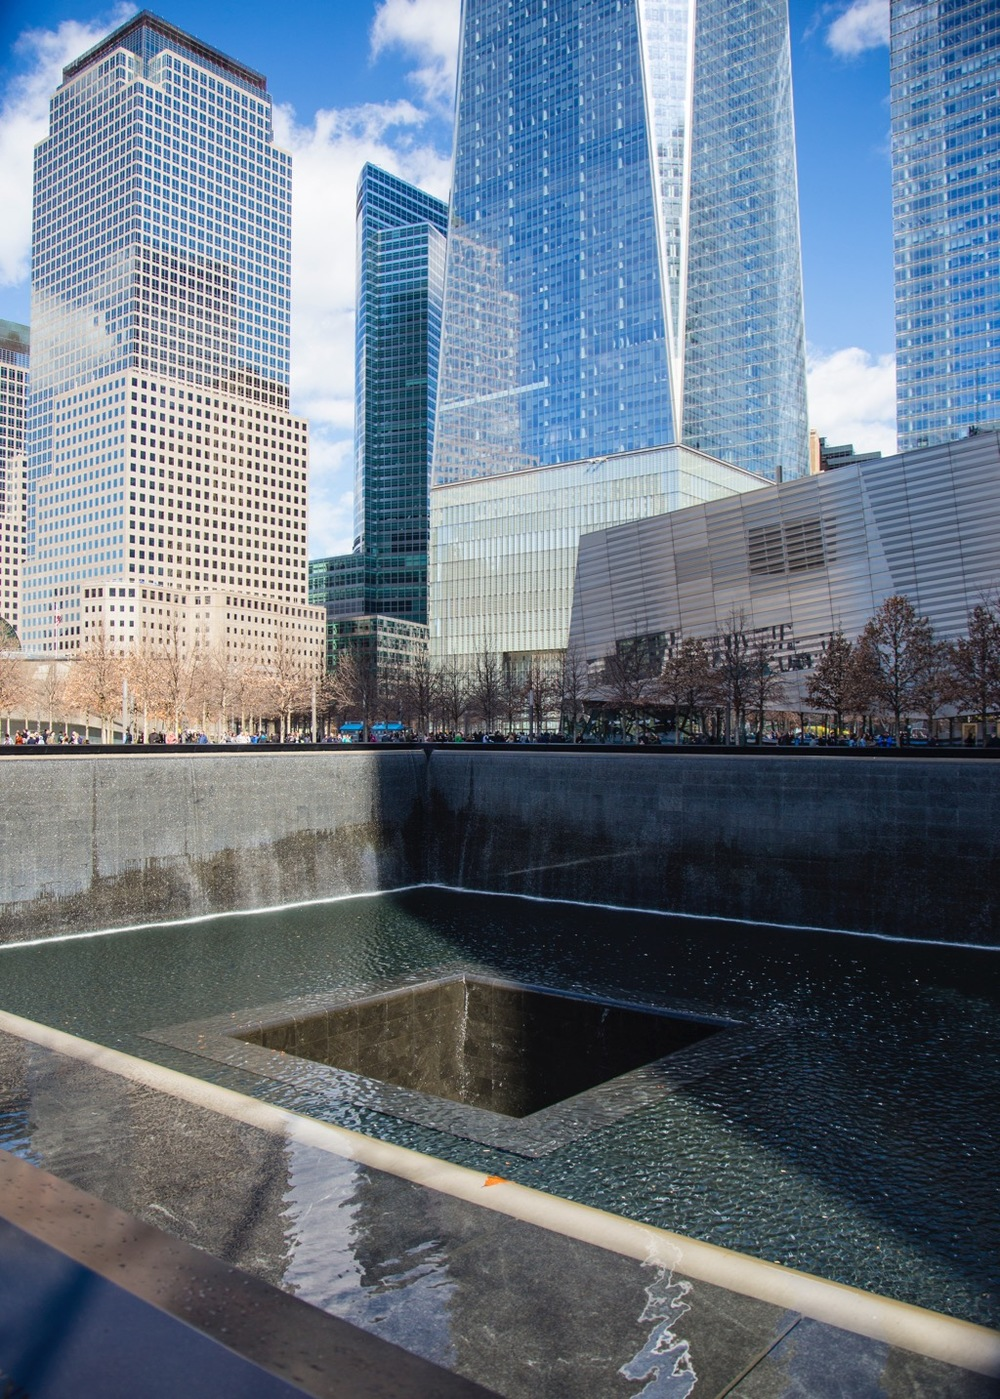 One of the two memorials to 9/11 and the original World Trade Centers.